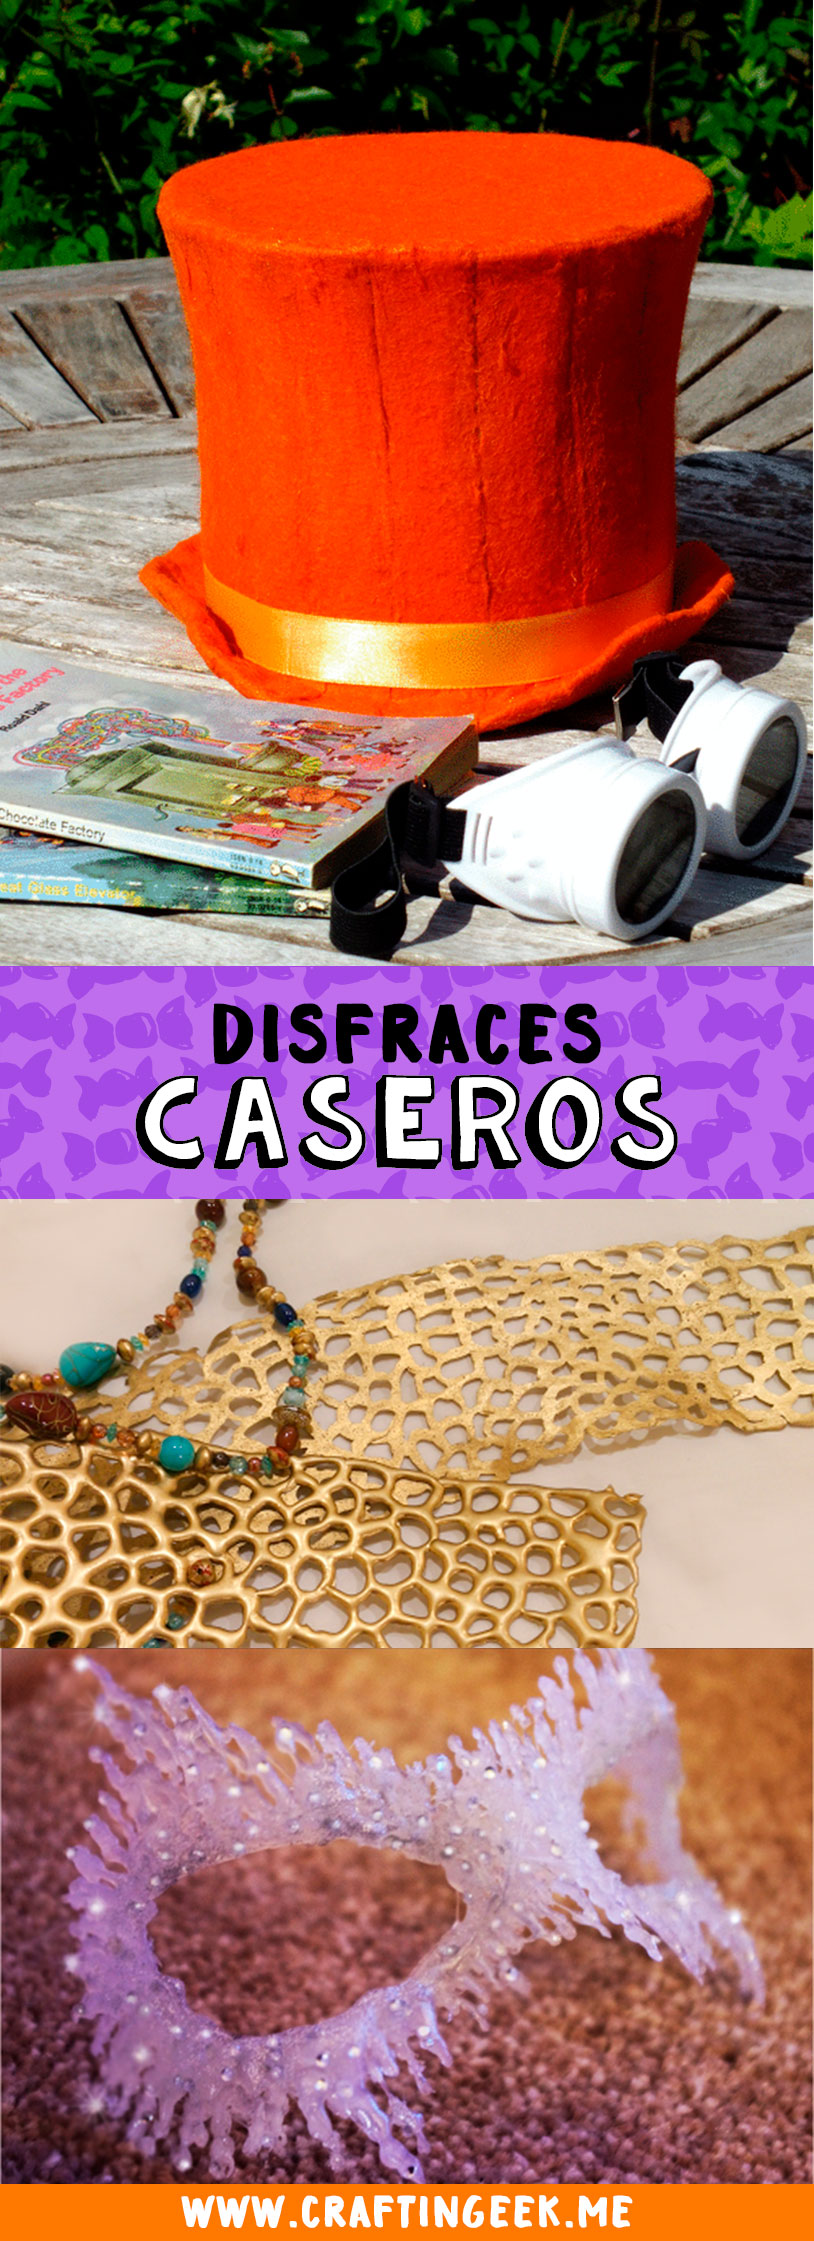 disfraces caseros faciles